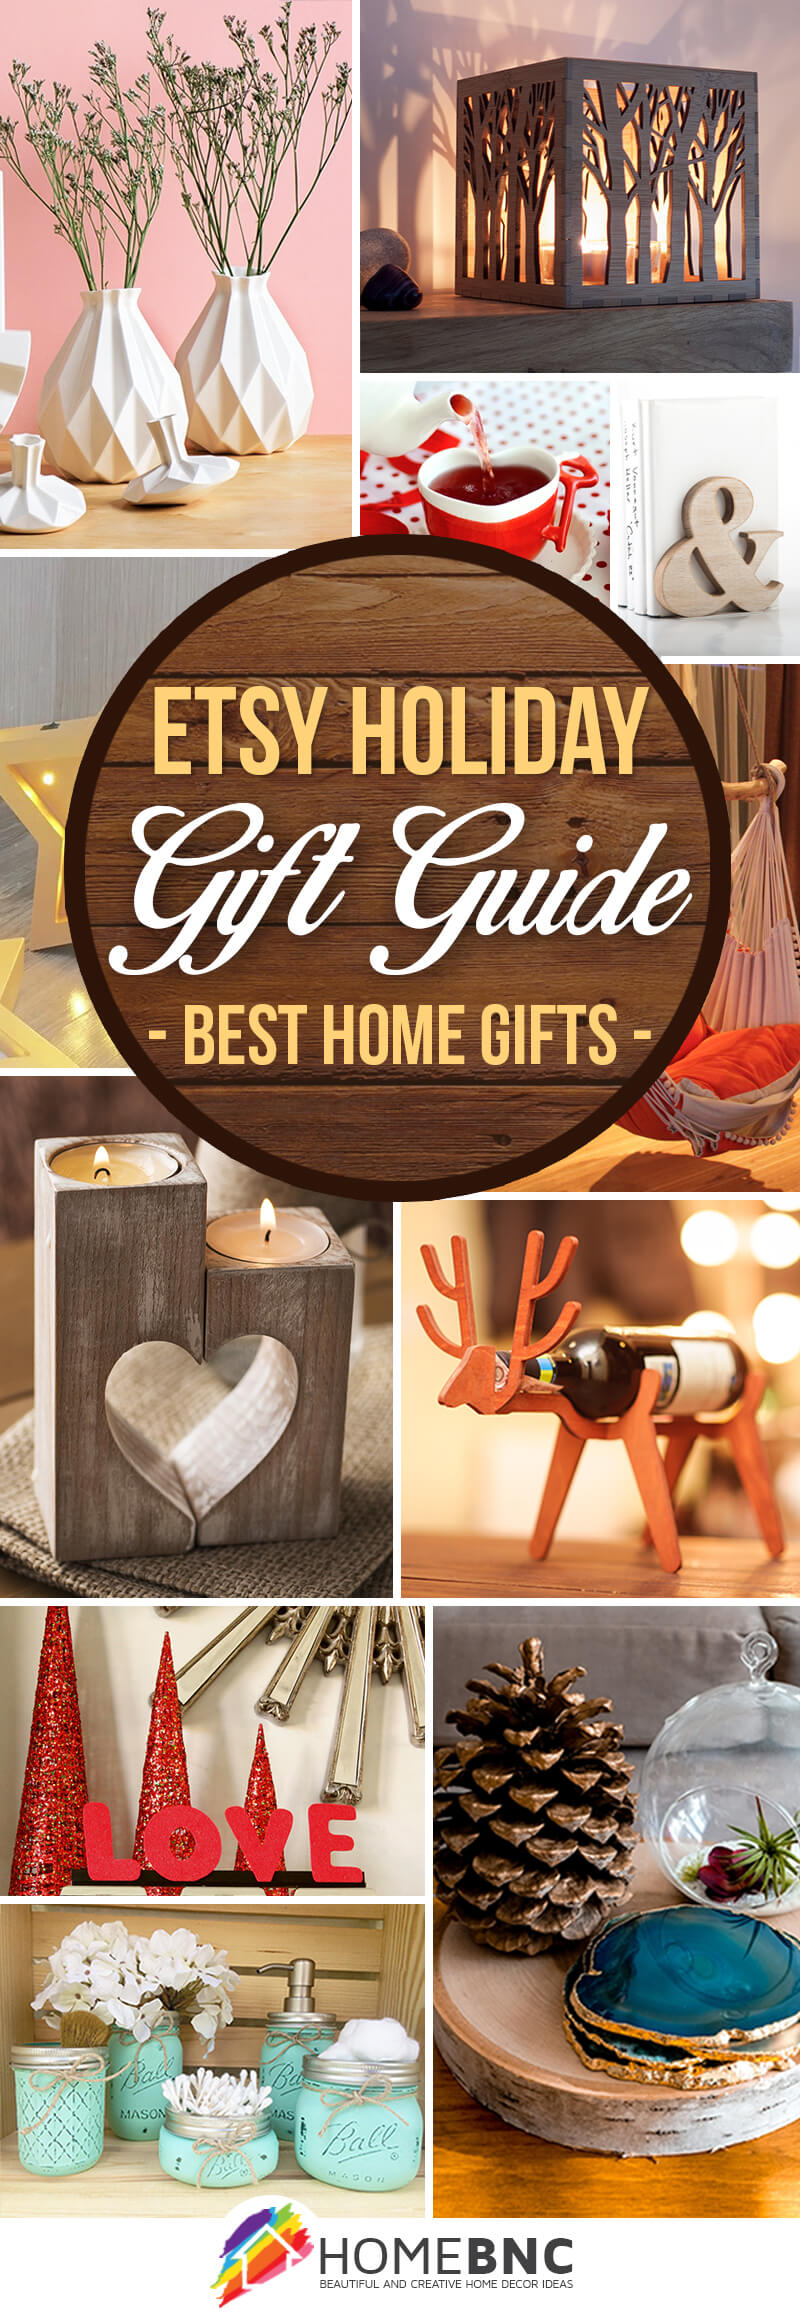 Etsy Holiday Gift Guide Best Home Christmas Gifts For Everyone In 2018